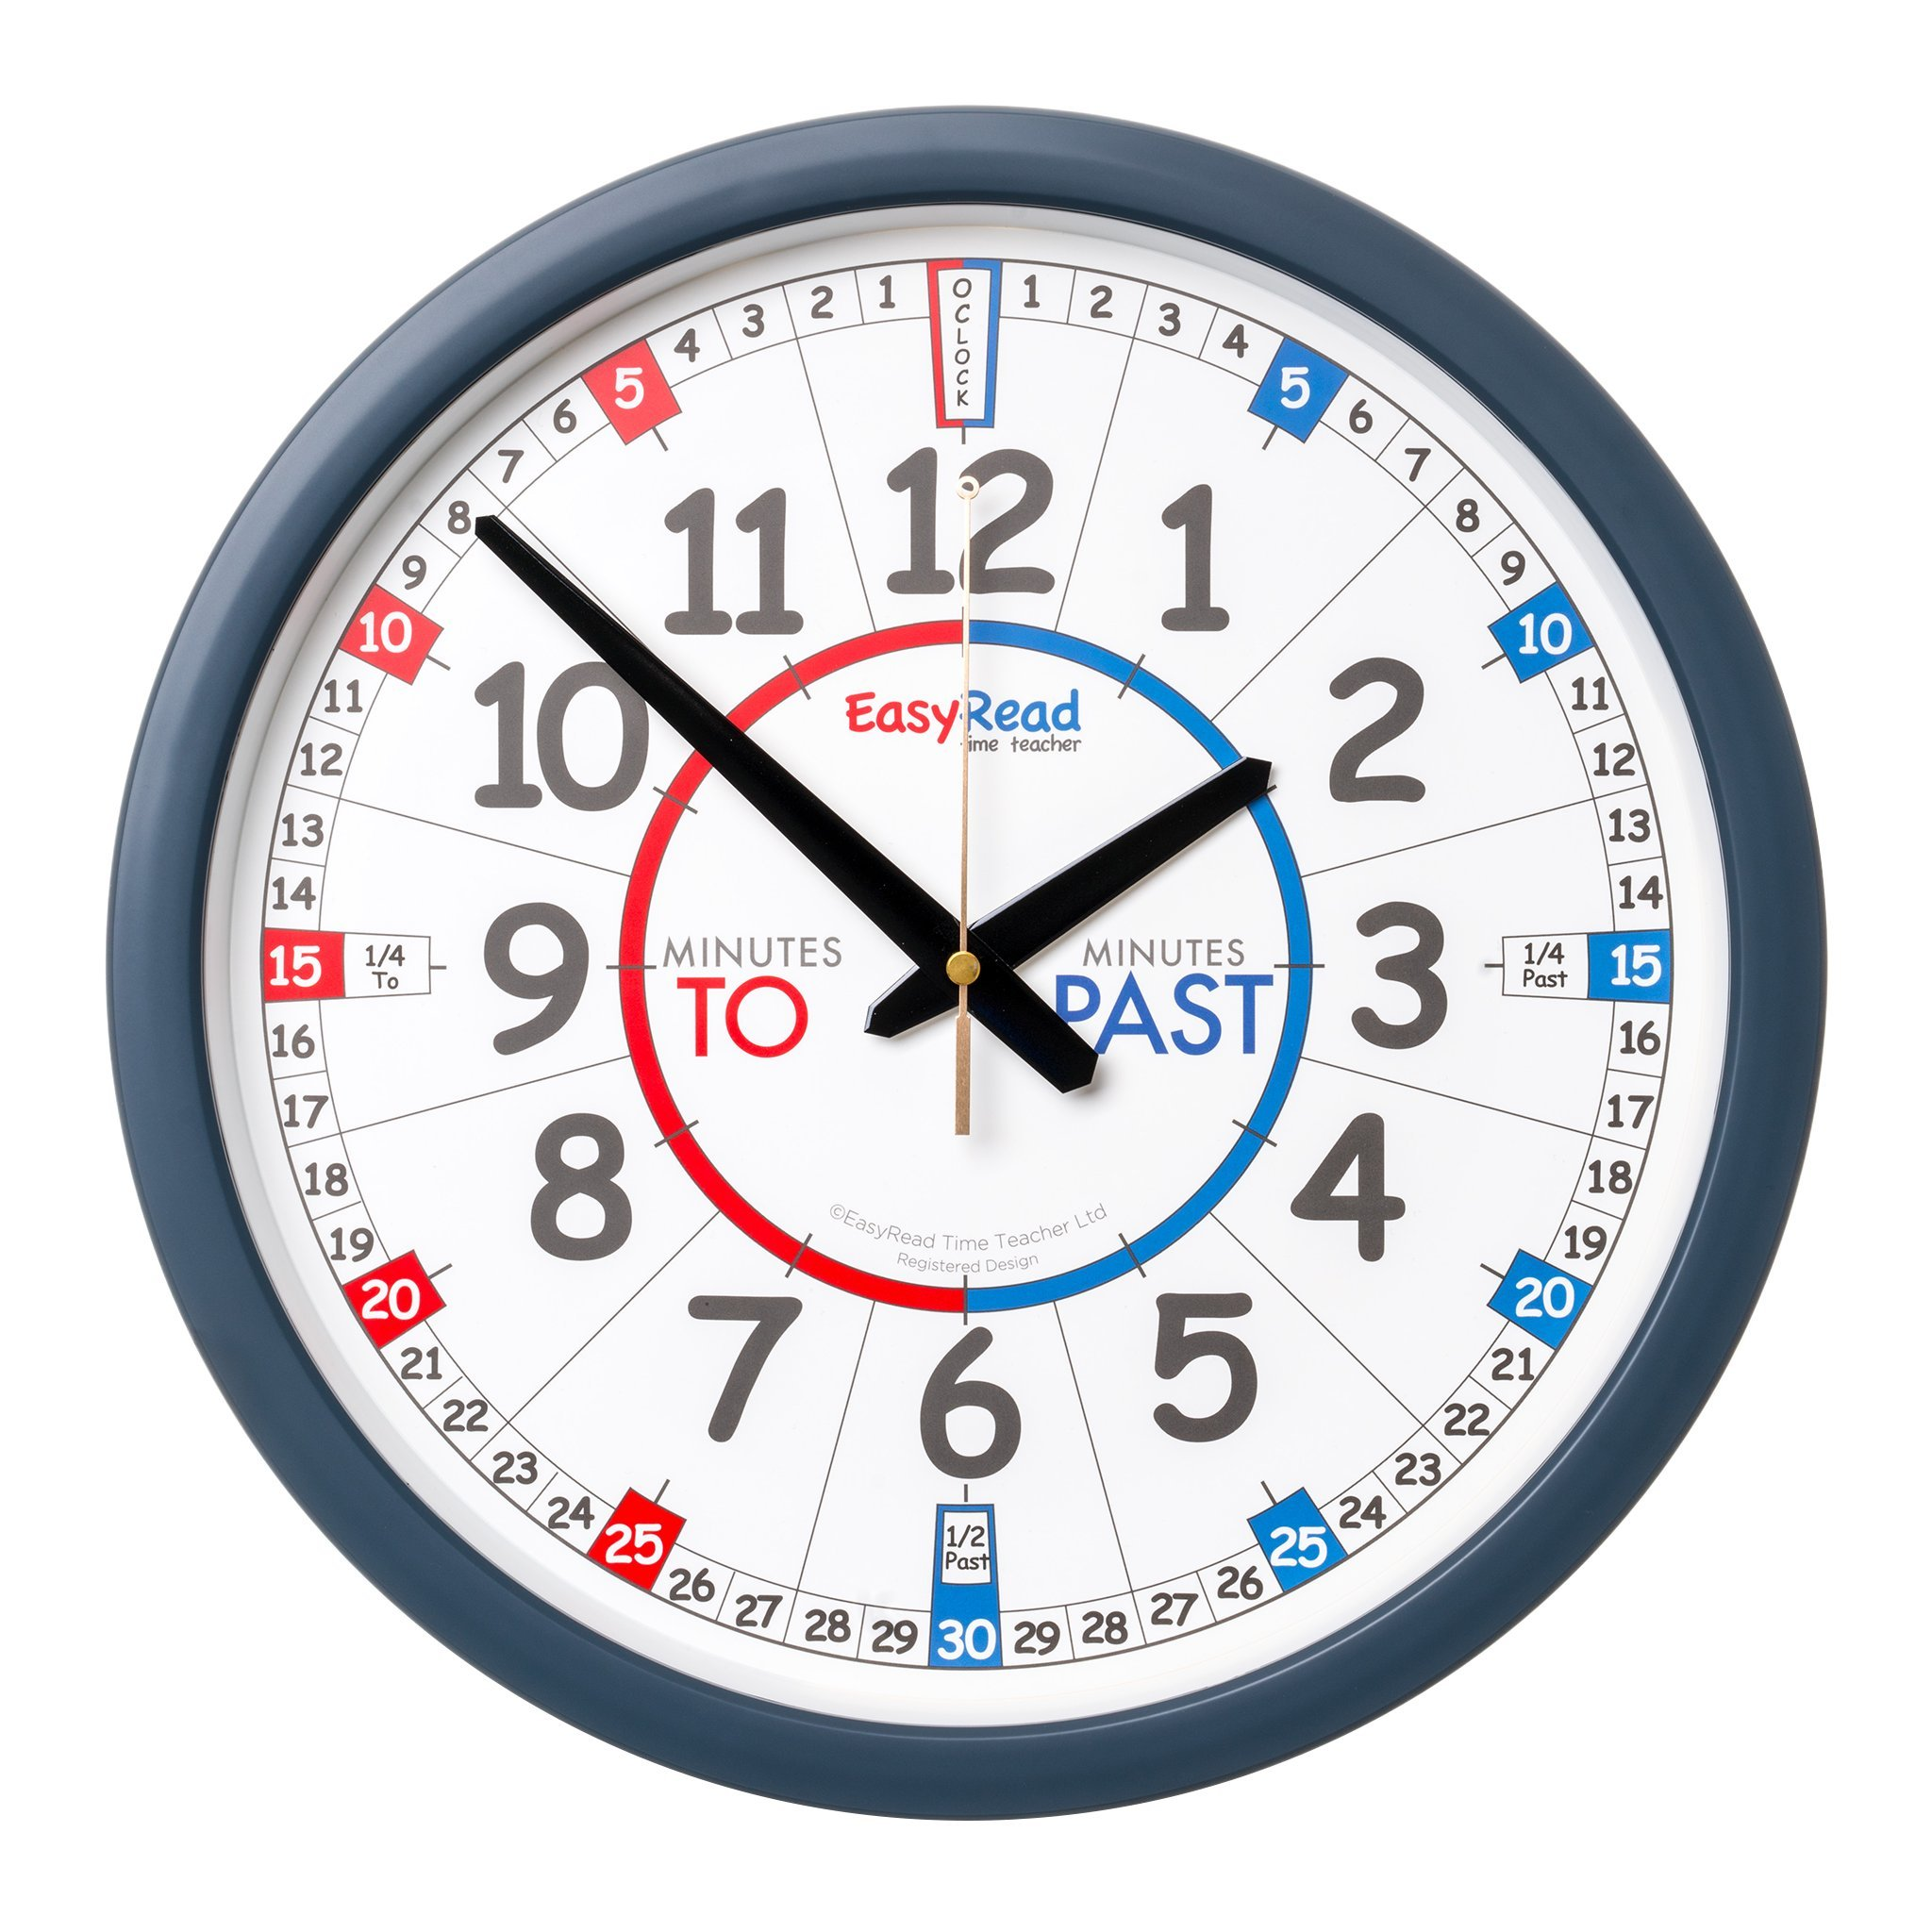 EasyRead Time Teacher Children's Wall Clock with simple 3-Step Teaching System using minutes past & minutes to method, 14'' dia, learn to tell the time, ages 5-12